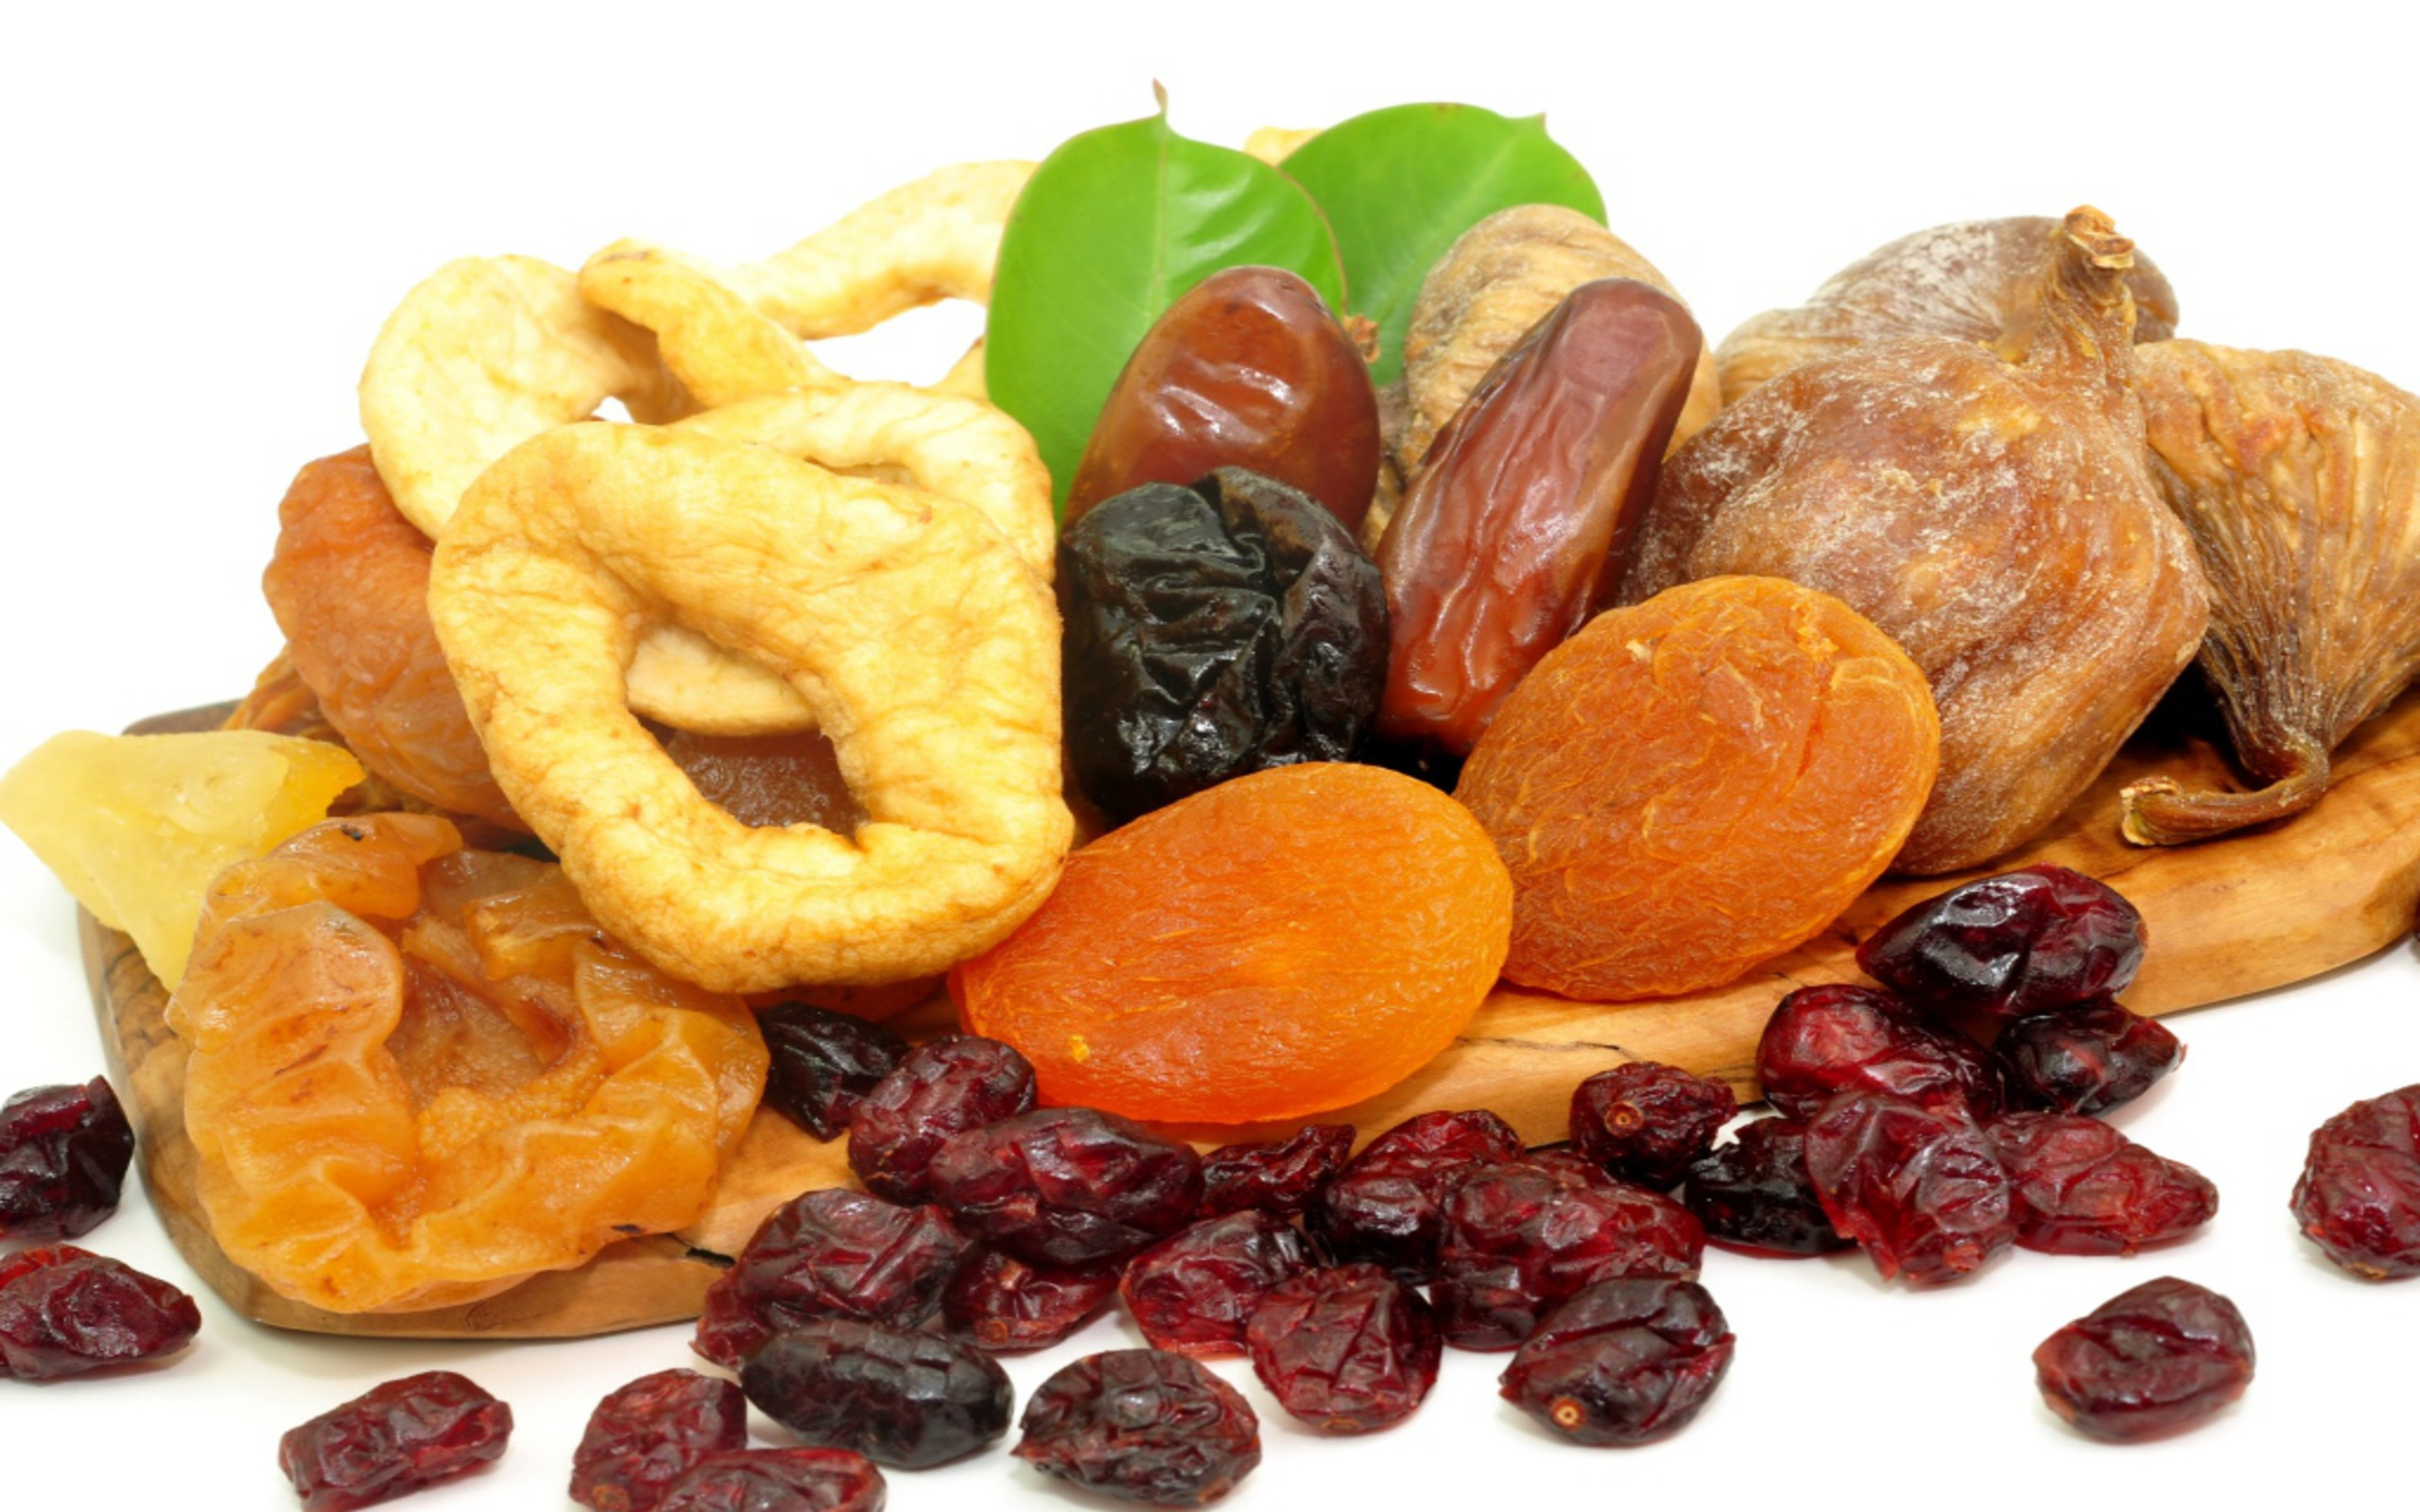 Reduce calorie intake by eating nuts and fruits